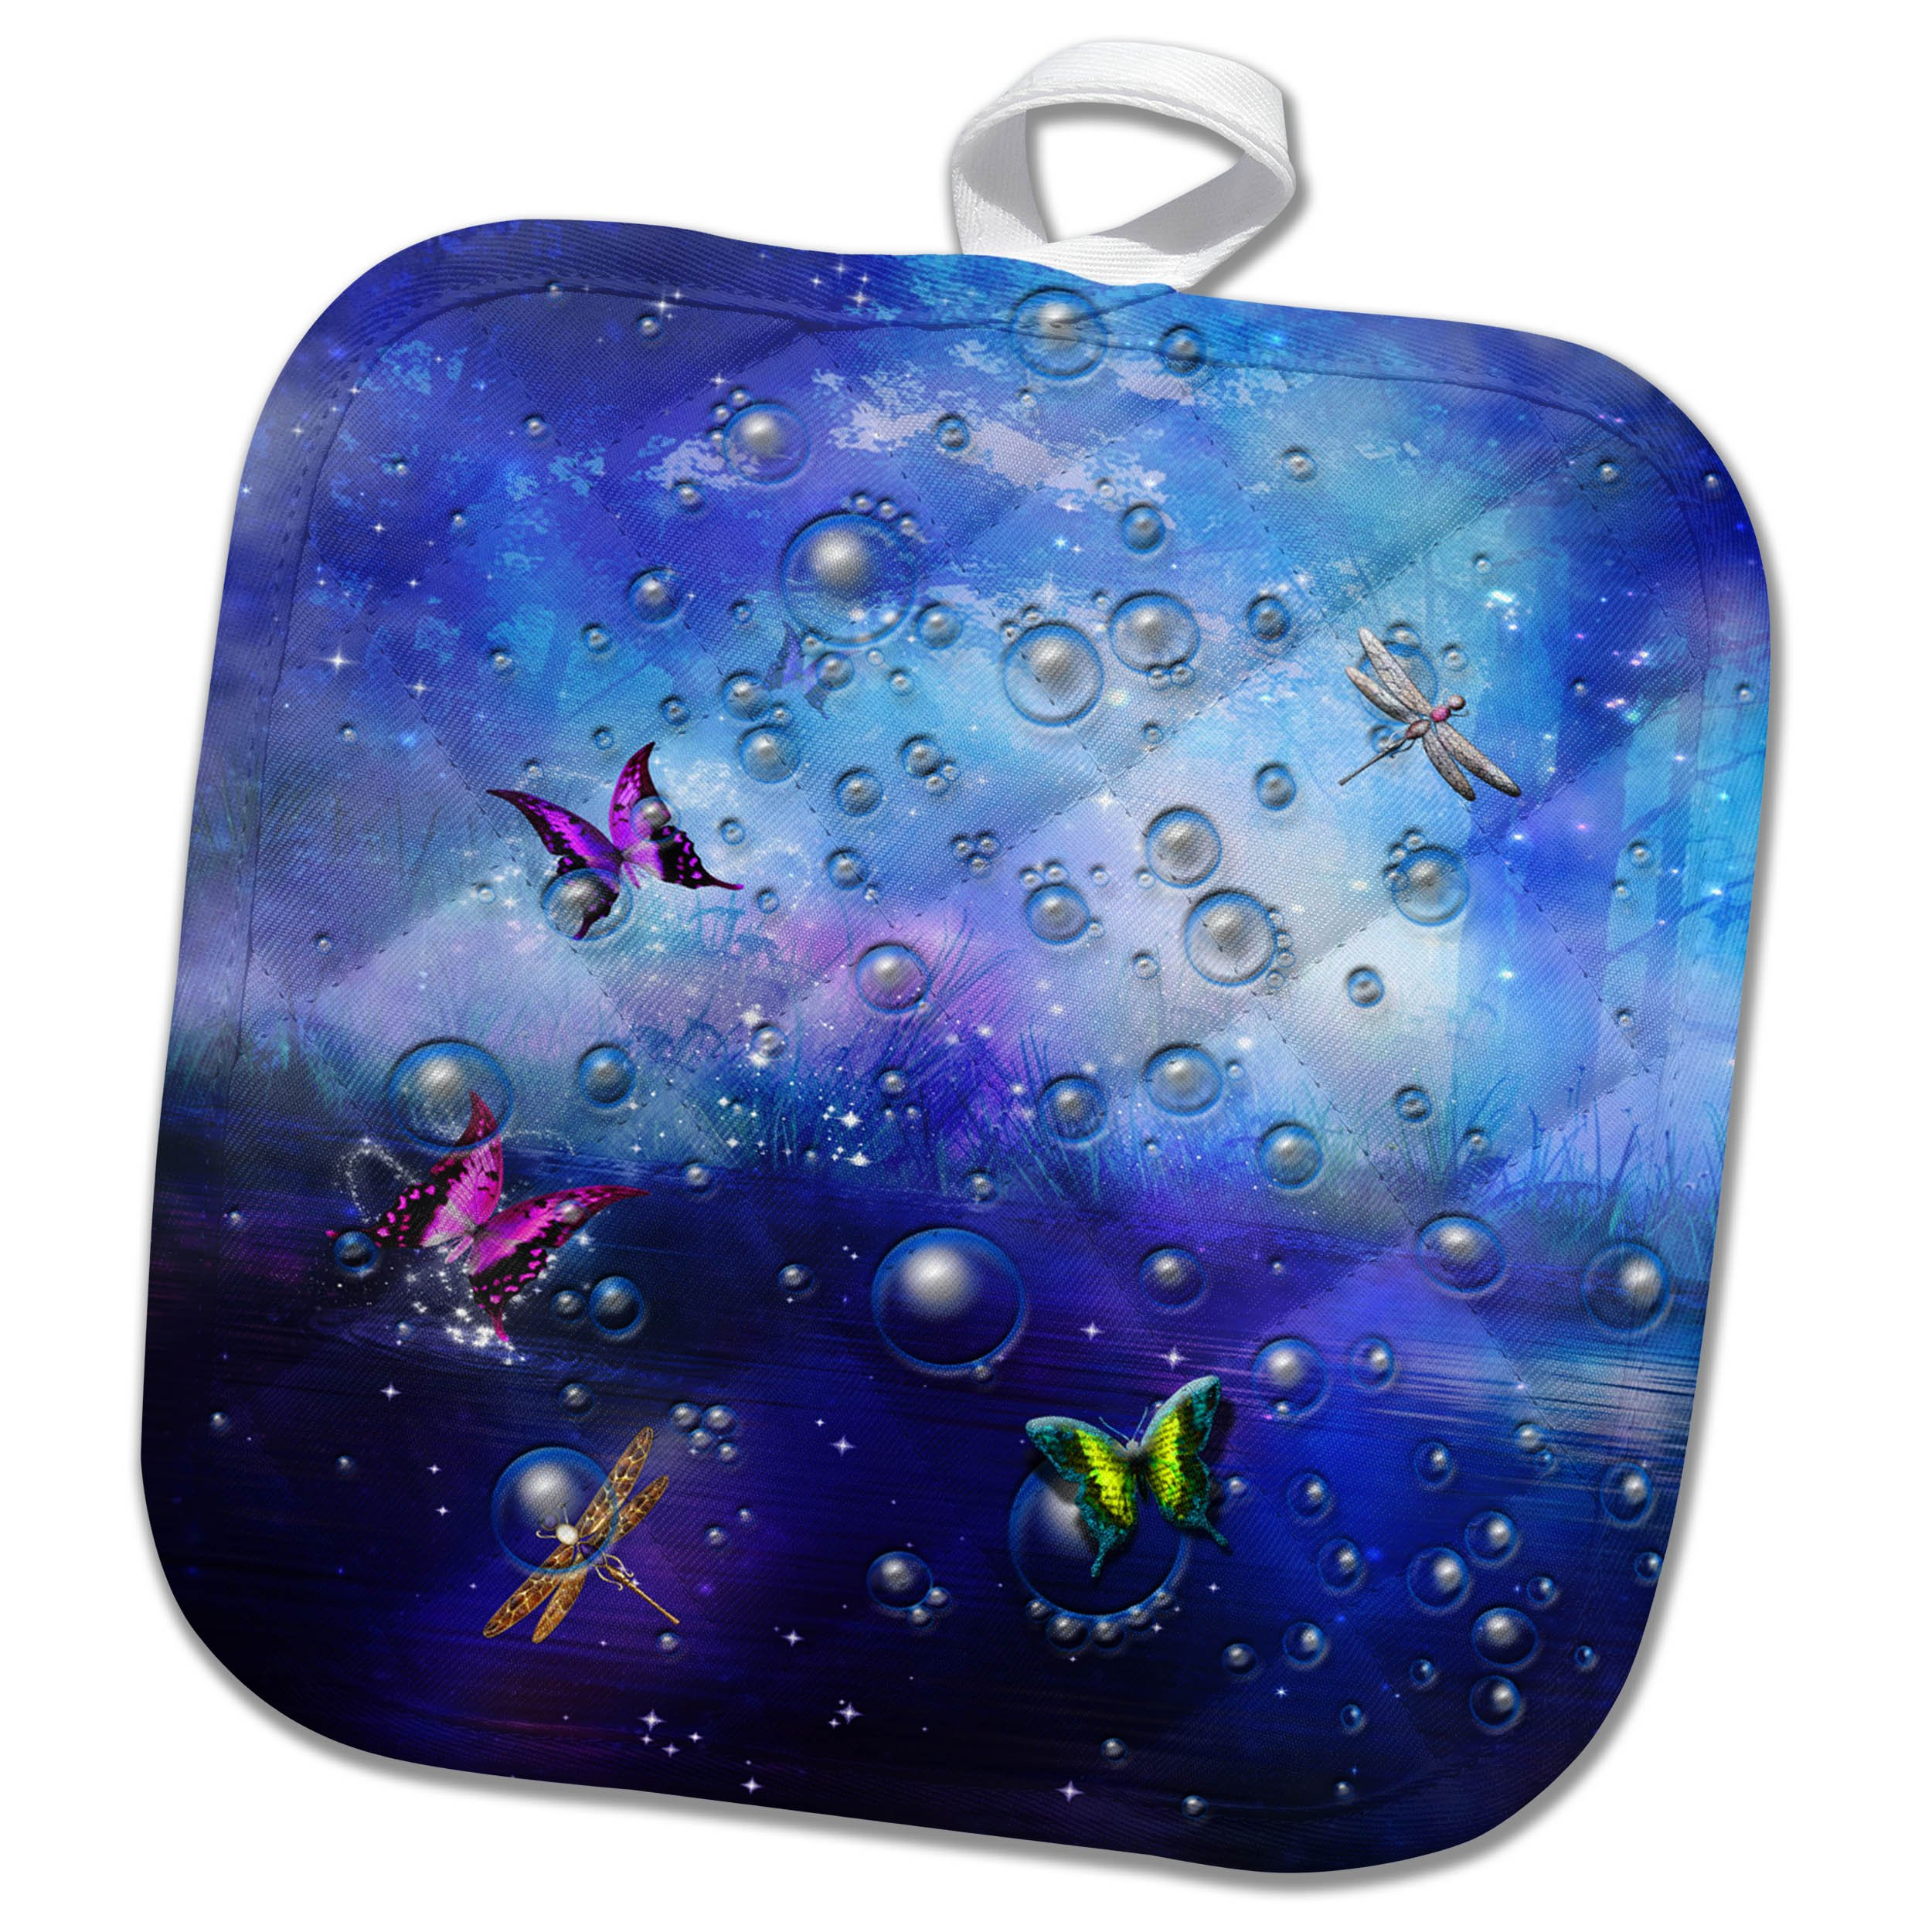 3dRose Fantasy - Transparent bubbles and butterflies in purple gradient backdrop - 8x8 Potholder (phl_265967_1)